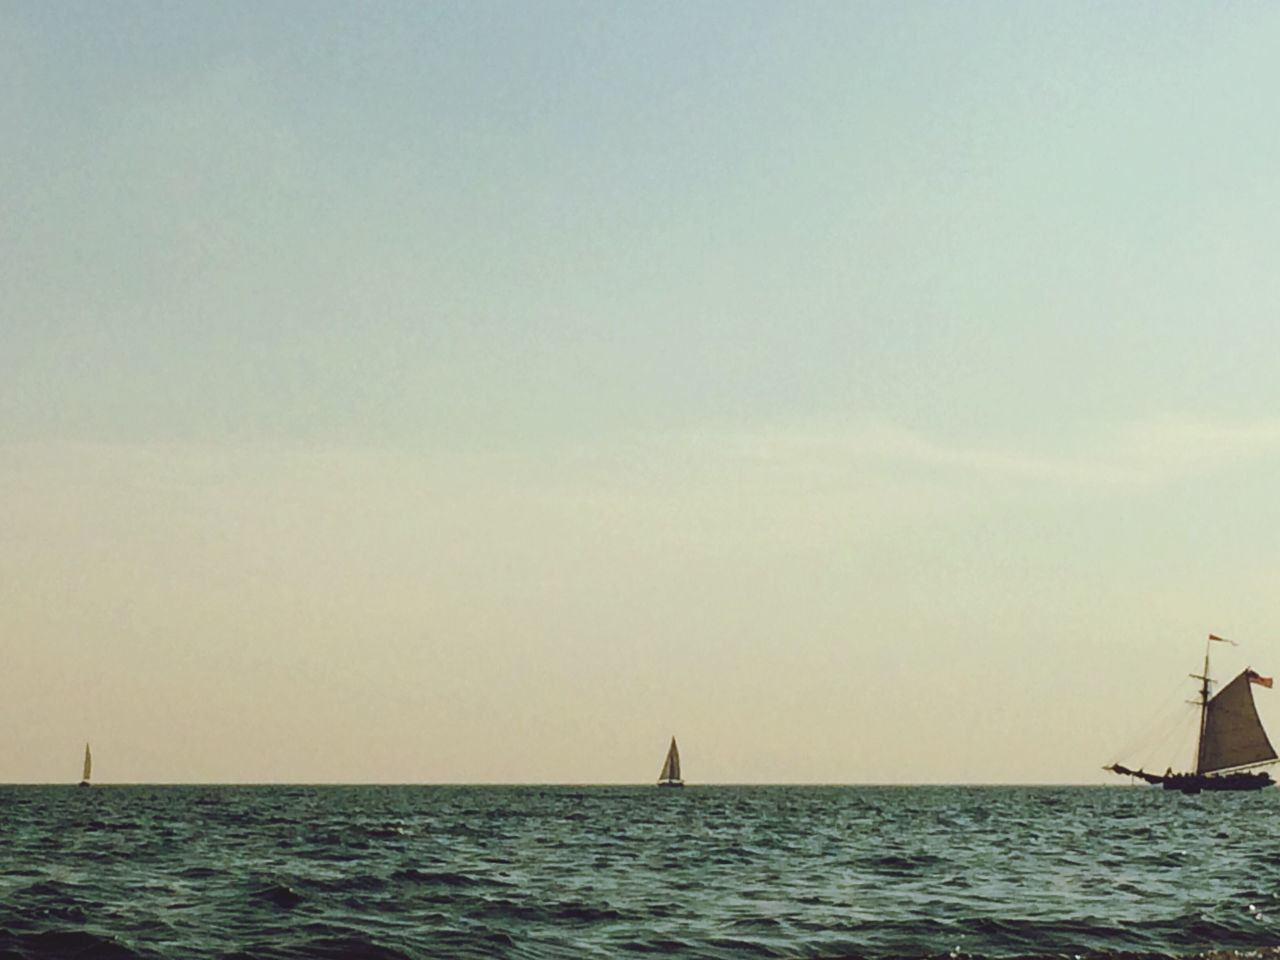 Distance Shot Of Boats In Calm Blue Sea